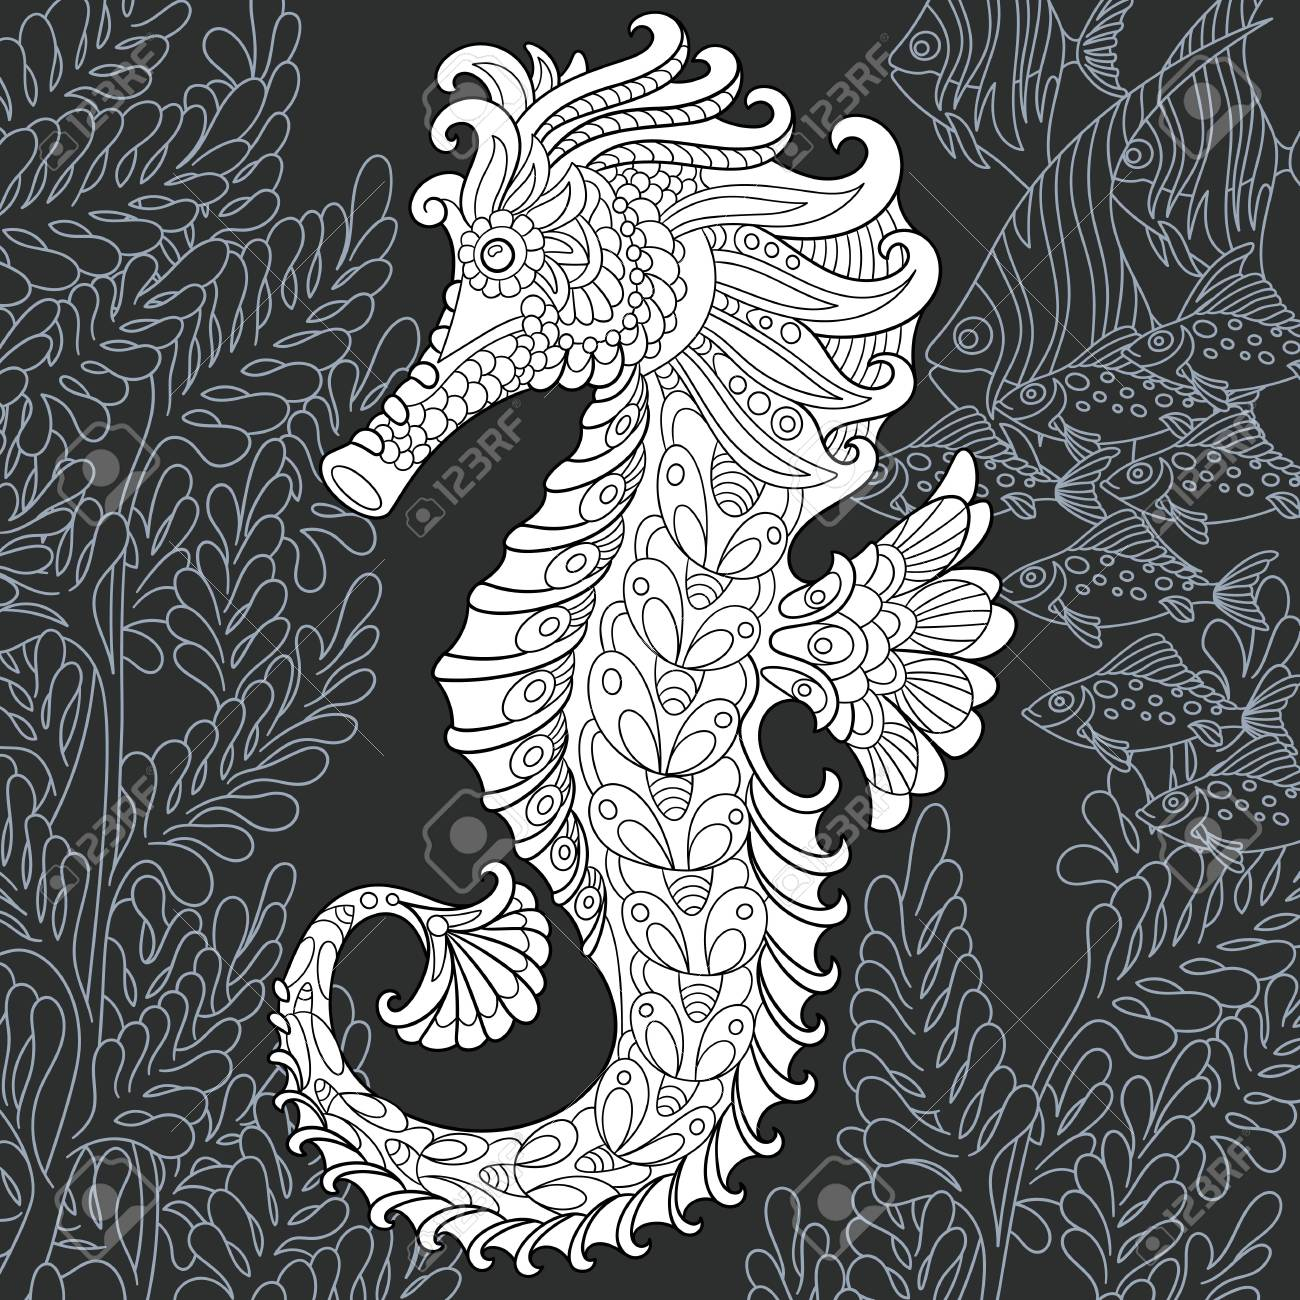 Sea horse drawn in line art style. Ocean background in black and white colors on chalkboard. Coloring book. Coloring page. - 107856843